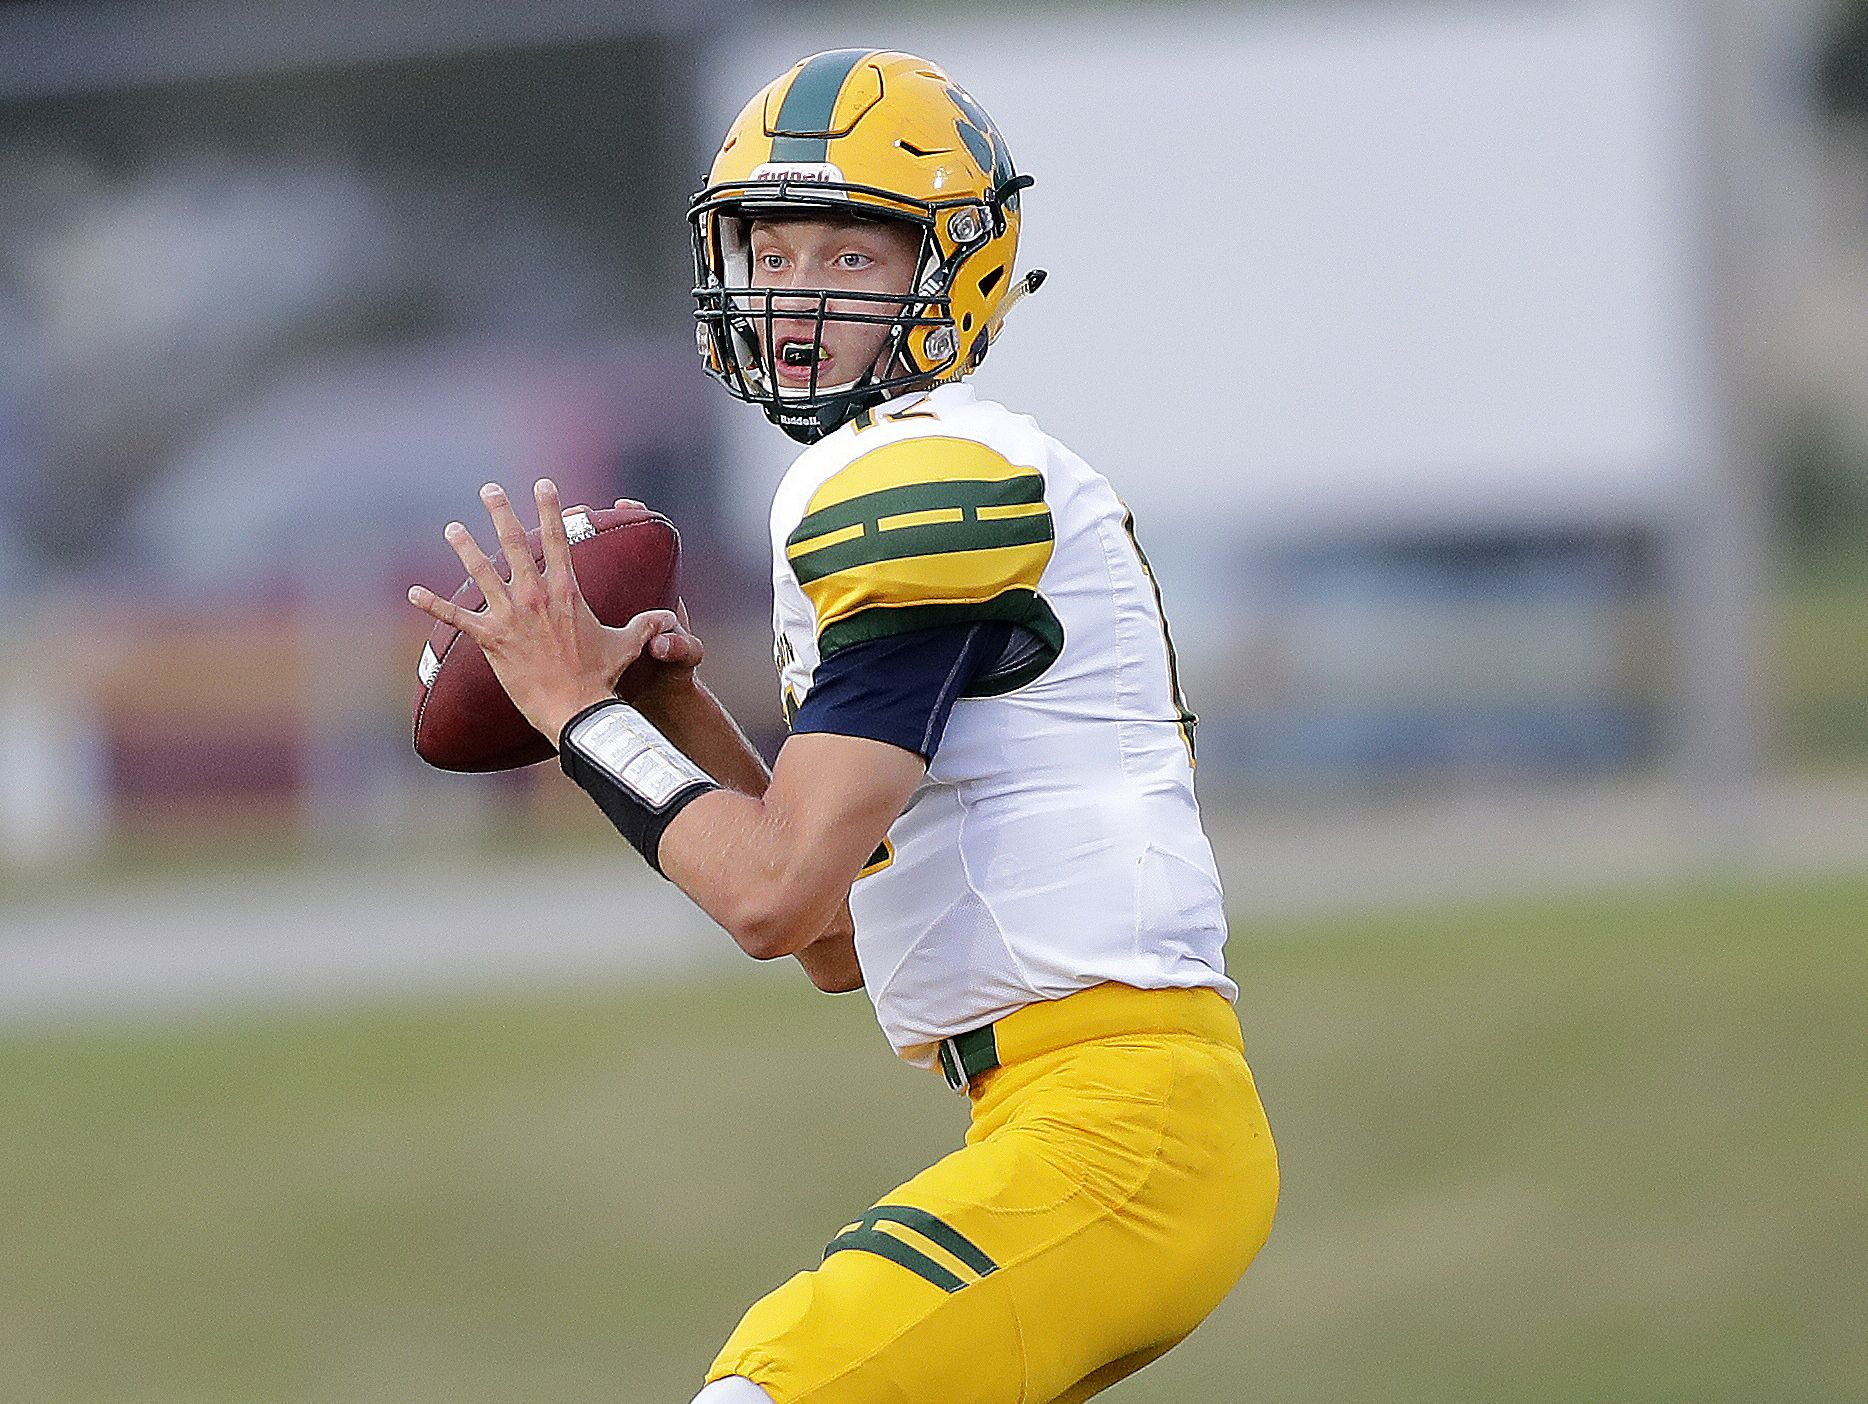 Ashwaubenon senior Ryan Johnson signed a national letter of intent with Northern Michigan University, becoming the third quarterback in as many years from the high school to sign a letter of intent with an NCAA Division I or II program.